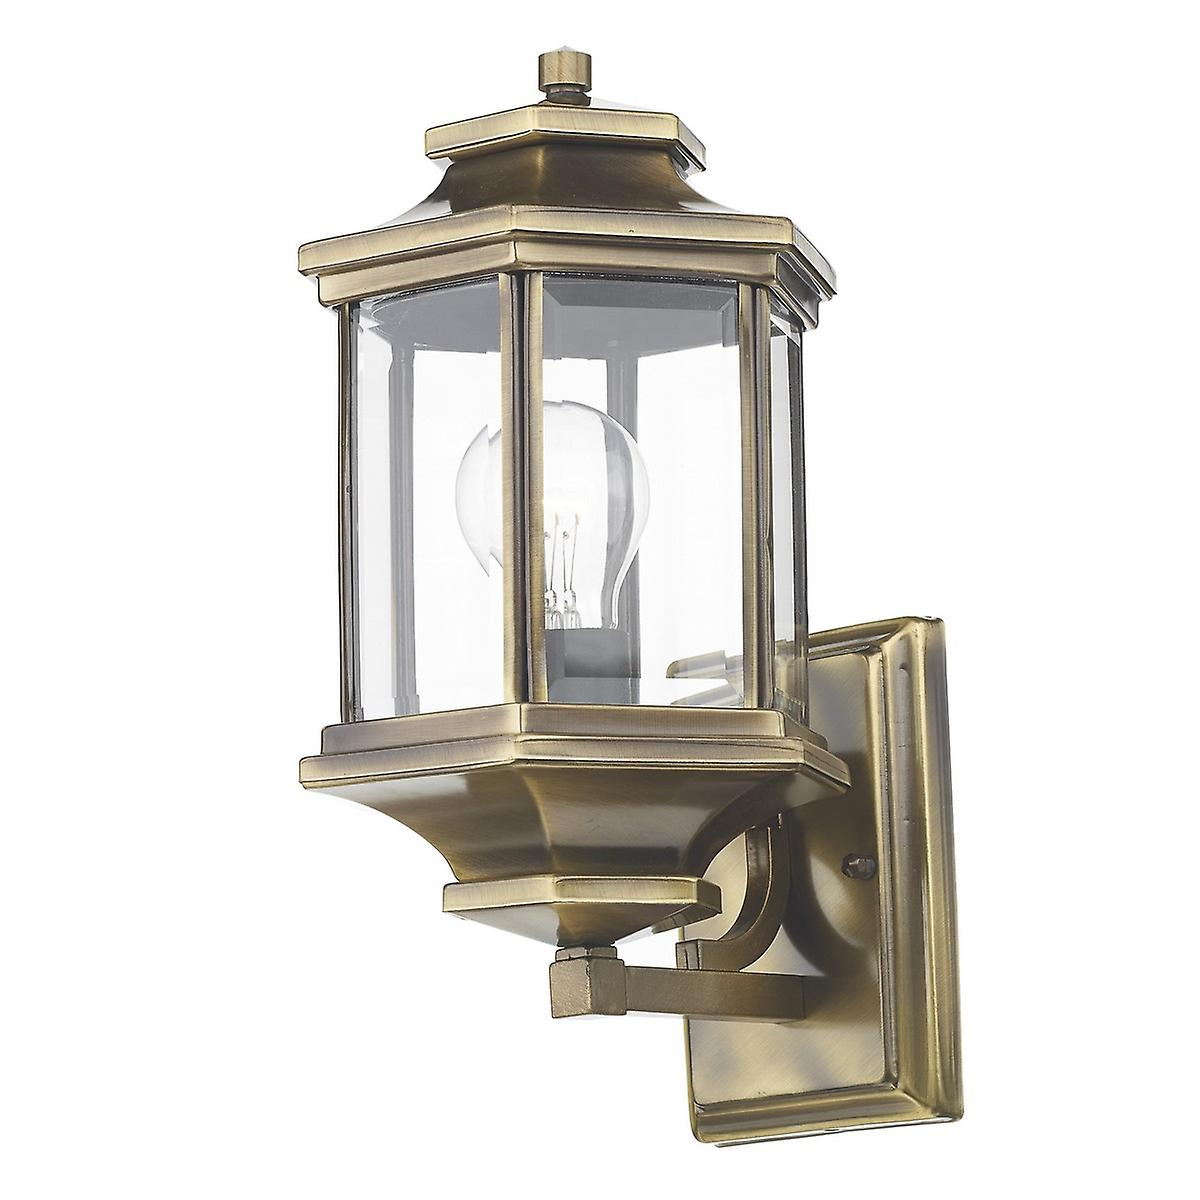 Dar LAD1675 Ladbroke Traditional Outdoor Wall Light Lantern Double Insulated